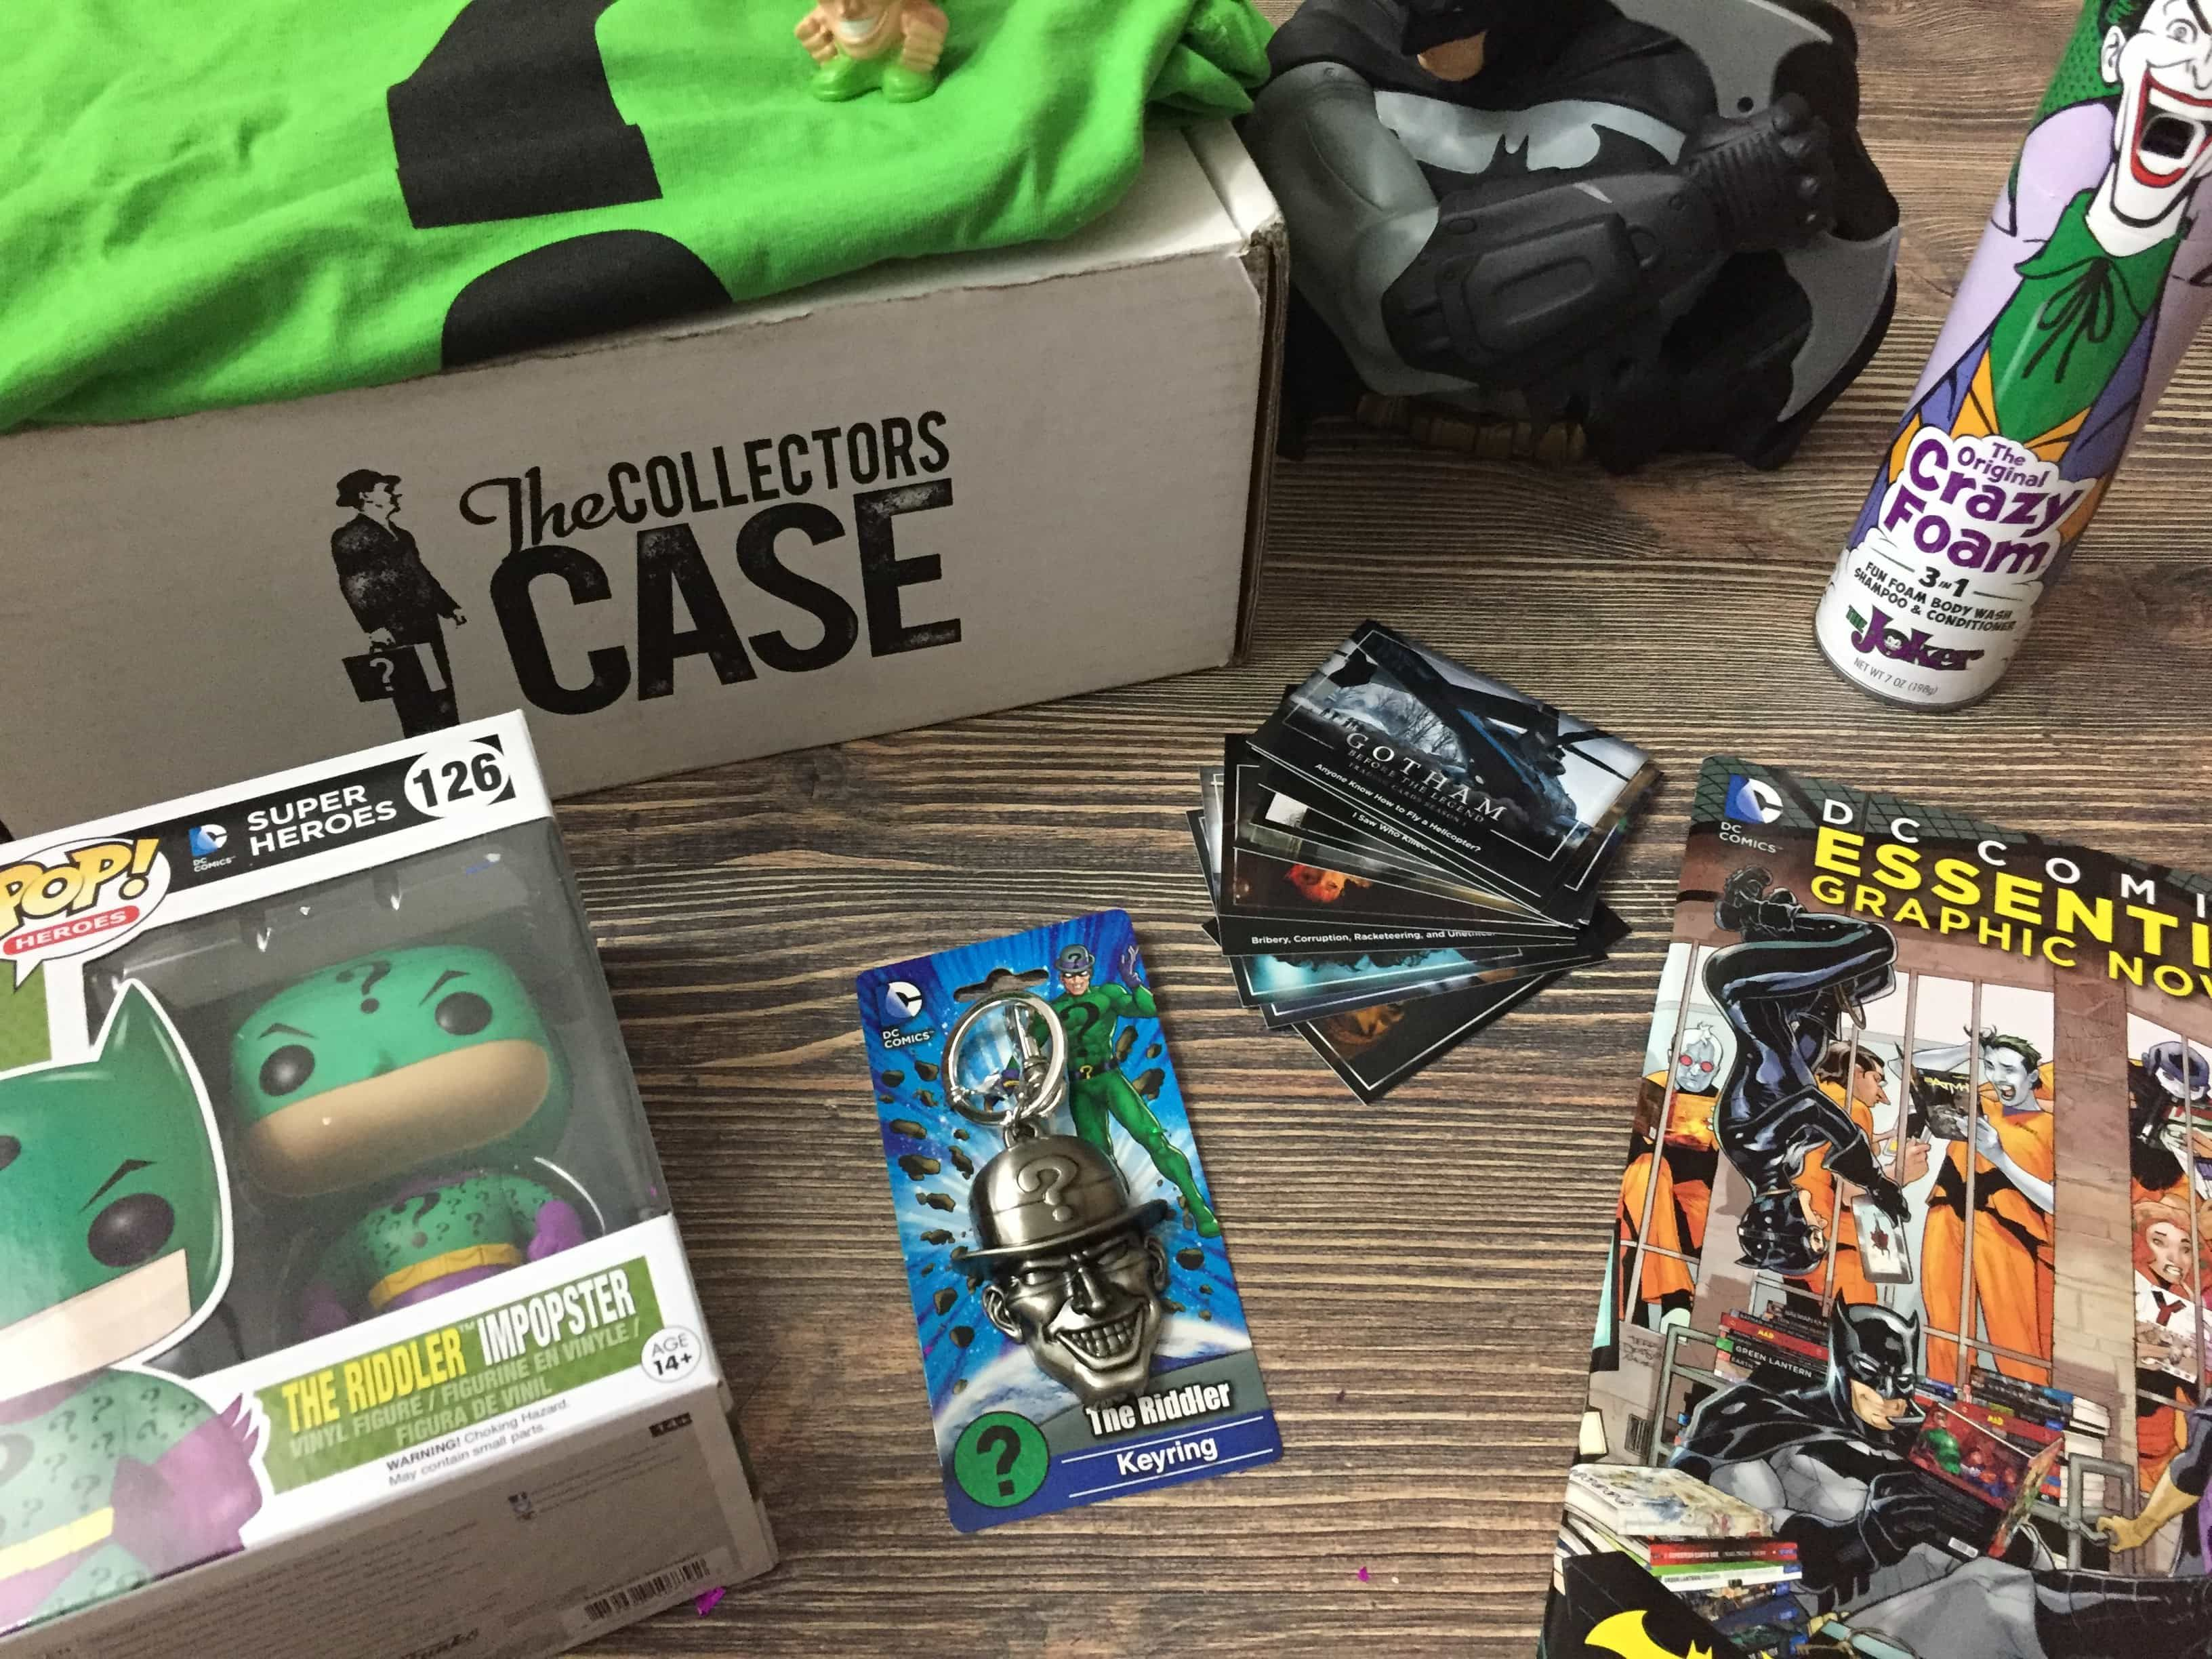 The Collectors Case Mystery box subscription, Mystery